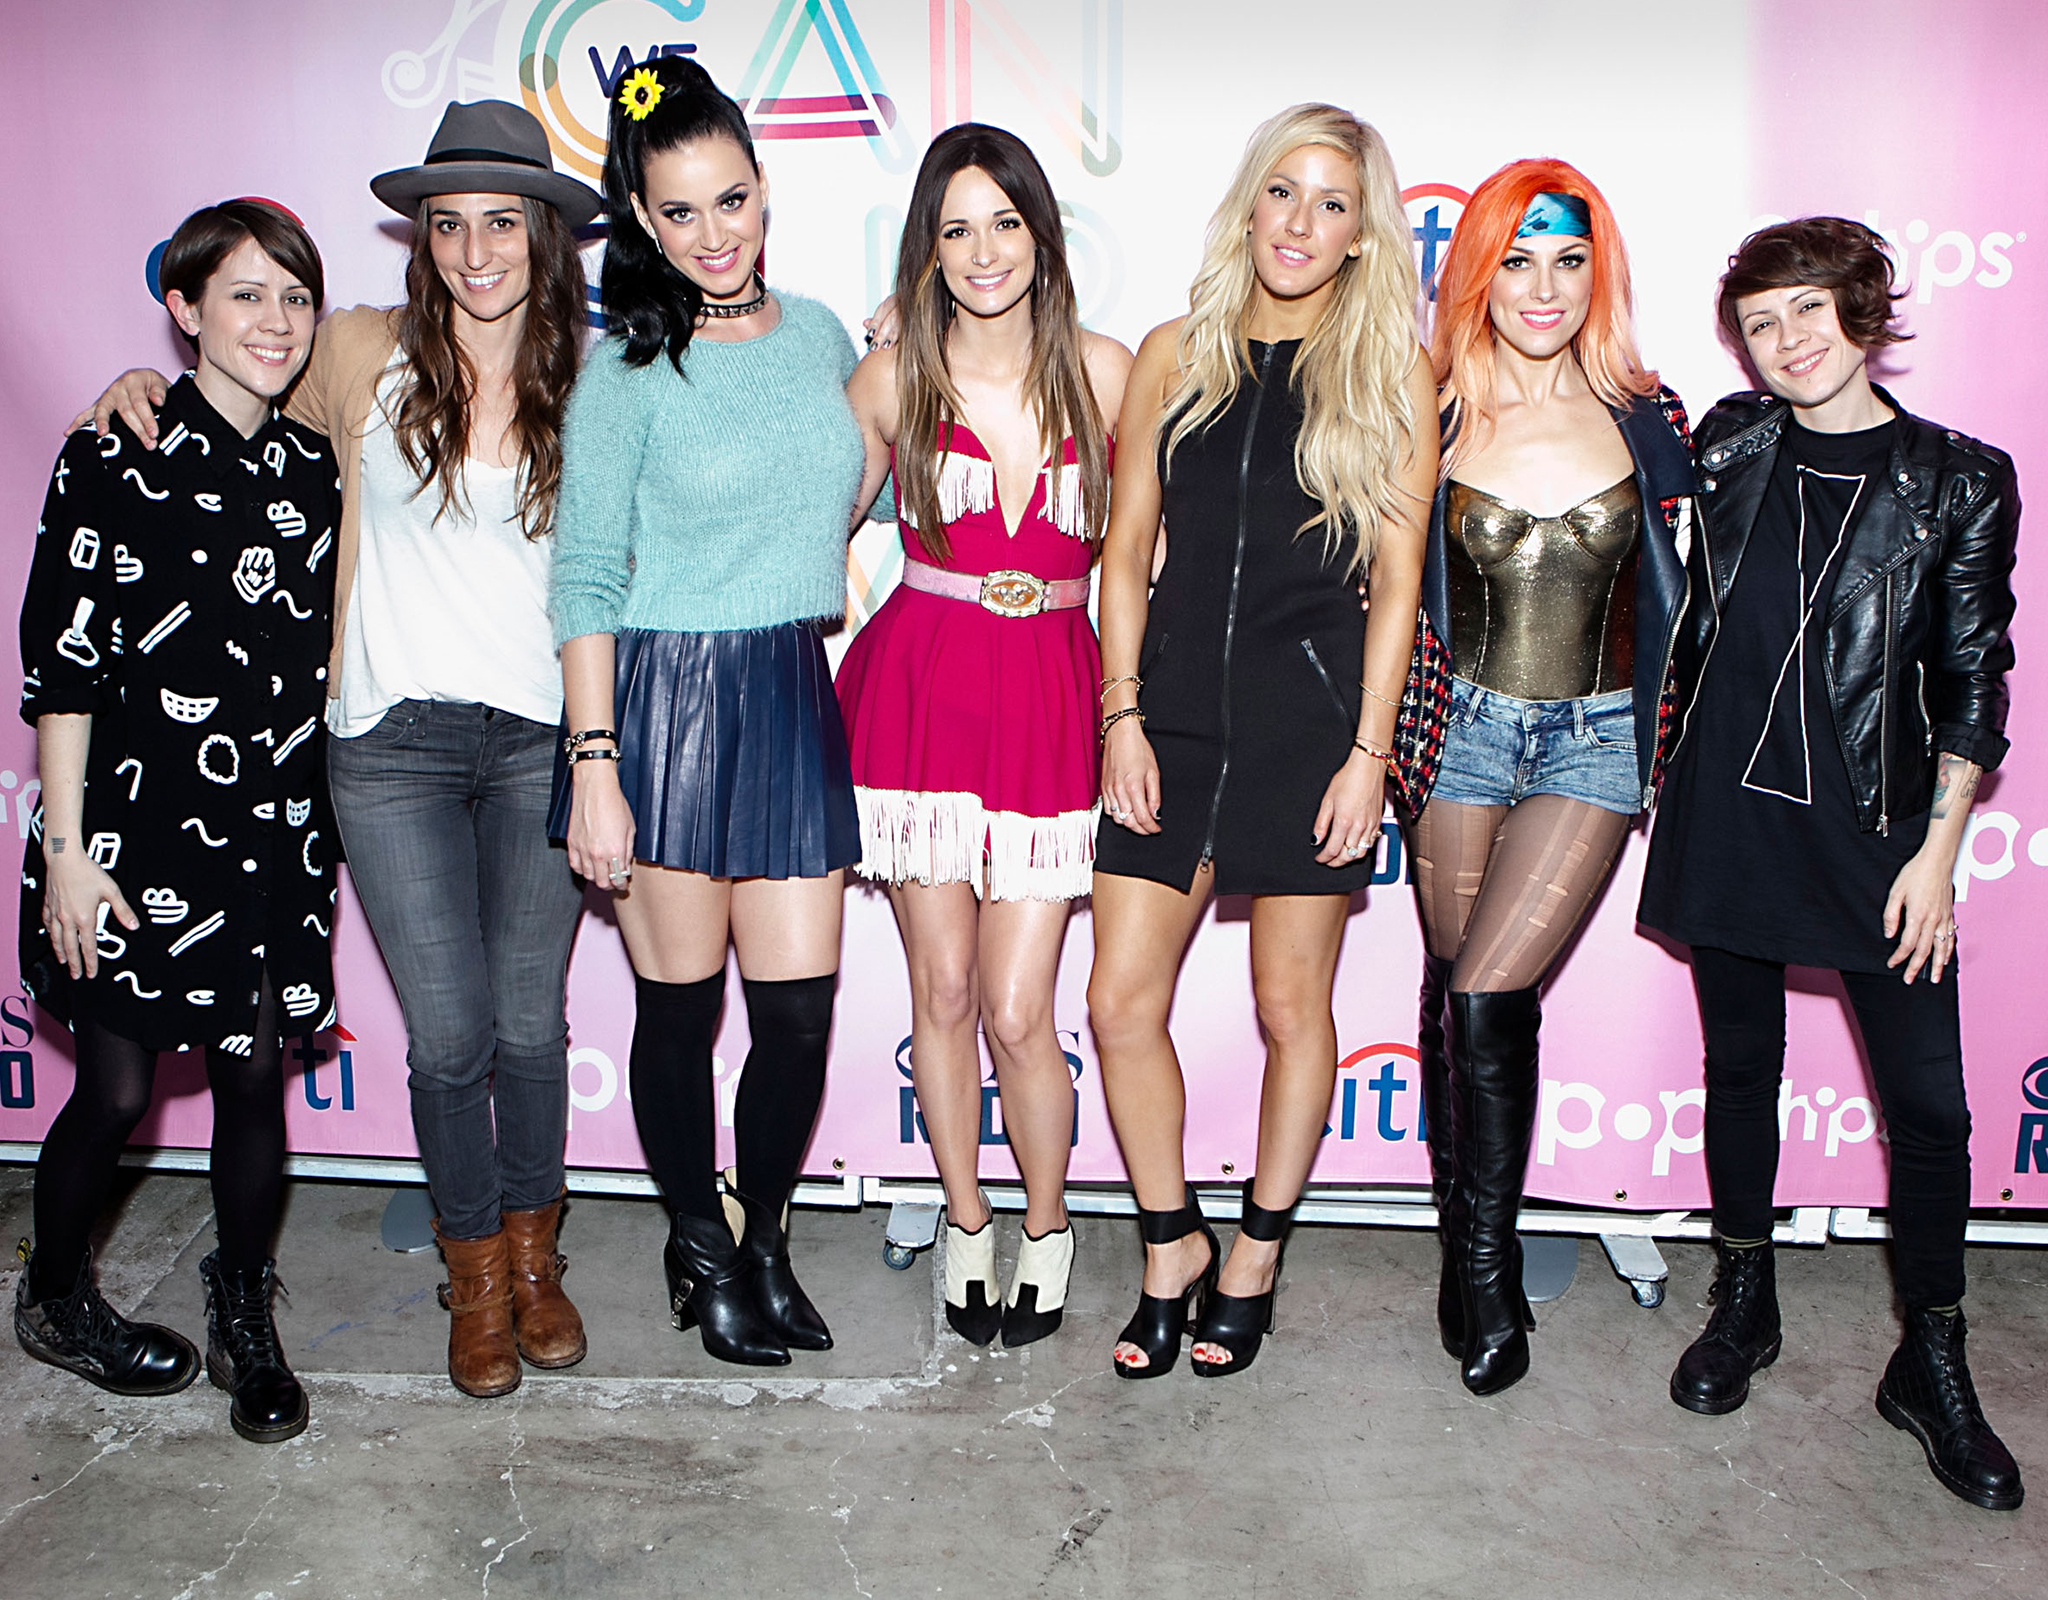 The #WeCanSurvive performers (L-R) Sara Quin, Sara Bareilles, Katy Perry, Kacey Musgraves, Ellie Goulding, Bonnie McKee, and Tegan Quin (Gabriel Olsen/FilmMagic)